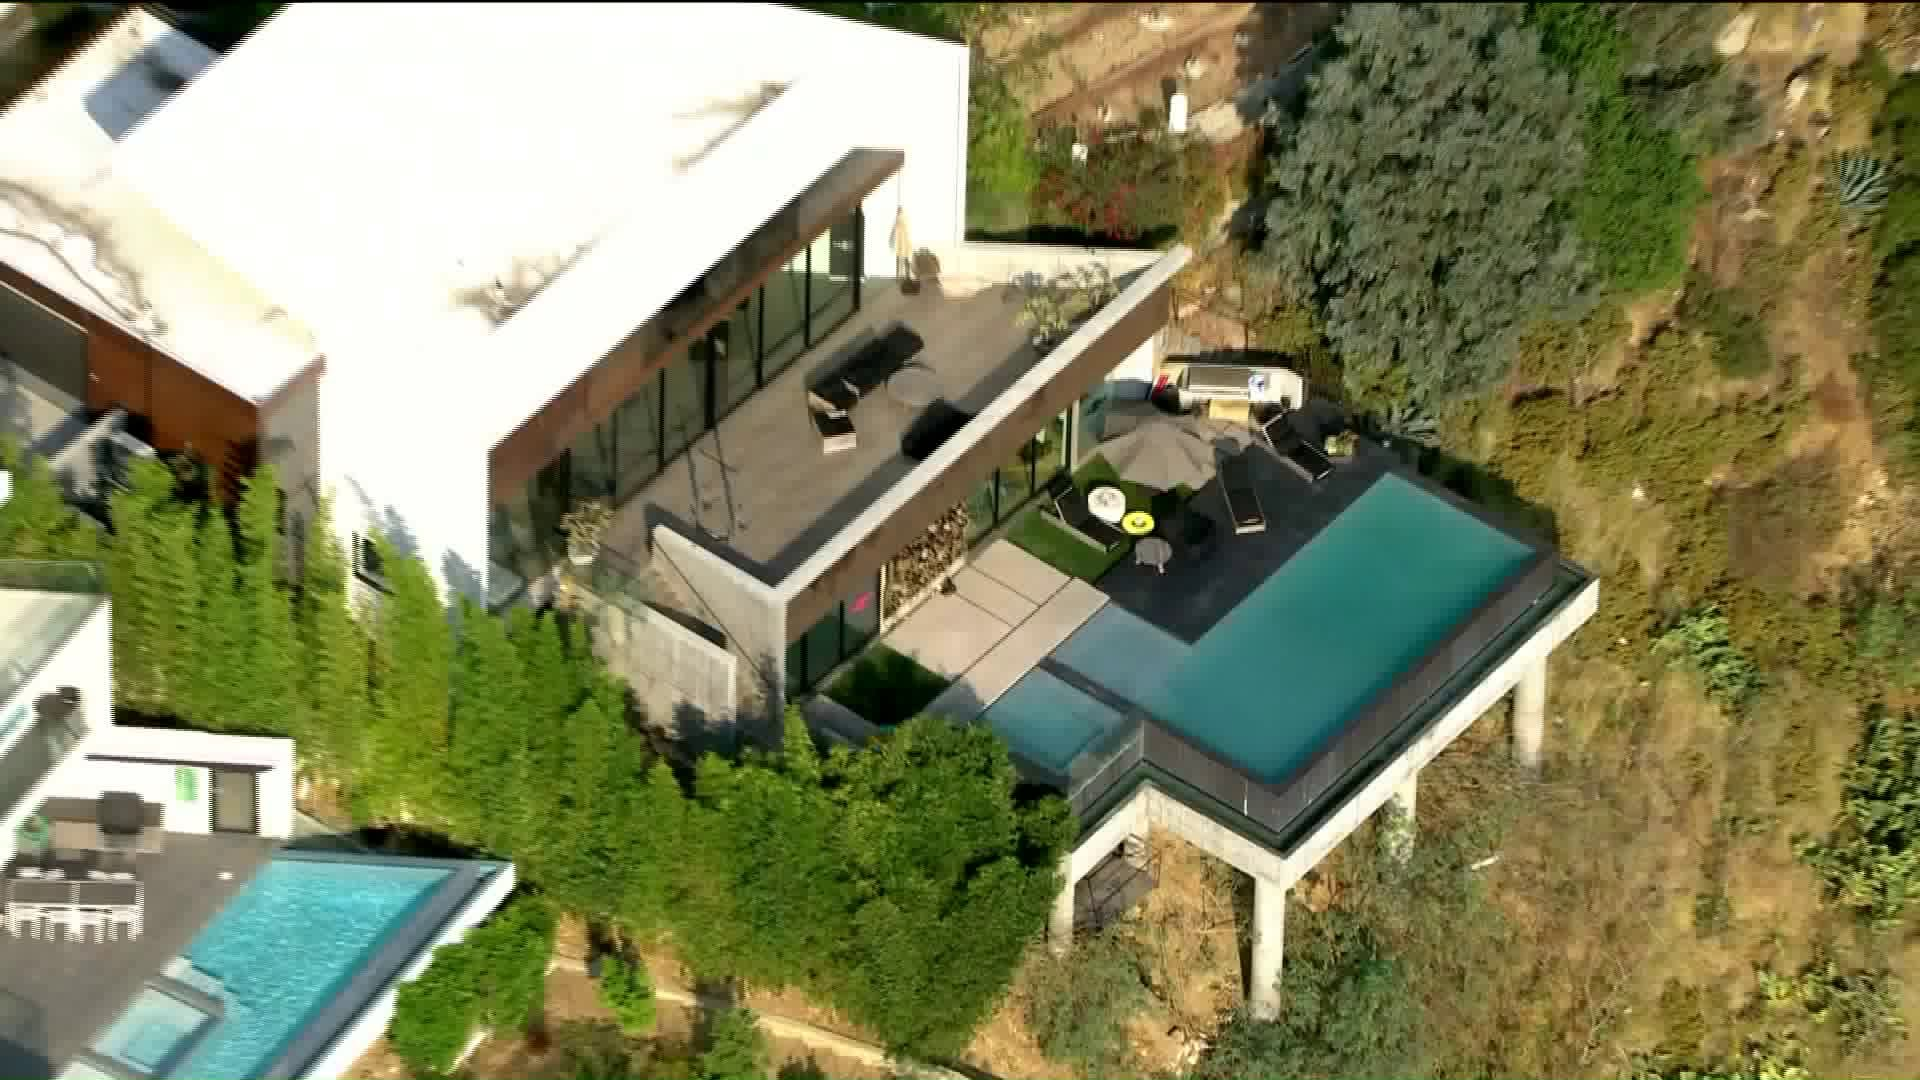 Mayor Eric Garcetti said he authorized shutting off utility services at this Hollywood Hills home pictured on Aug. 19, 2020, that's been the site of parties despite a ban on large gatherings during the coronavirus pandemic. (KTLA)